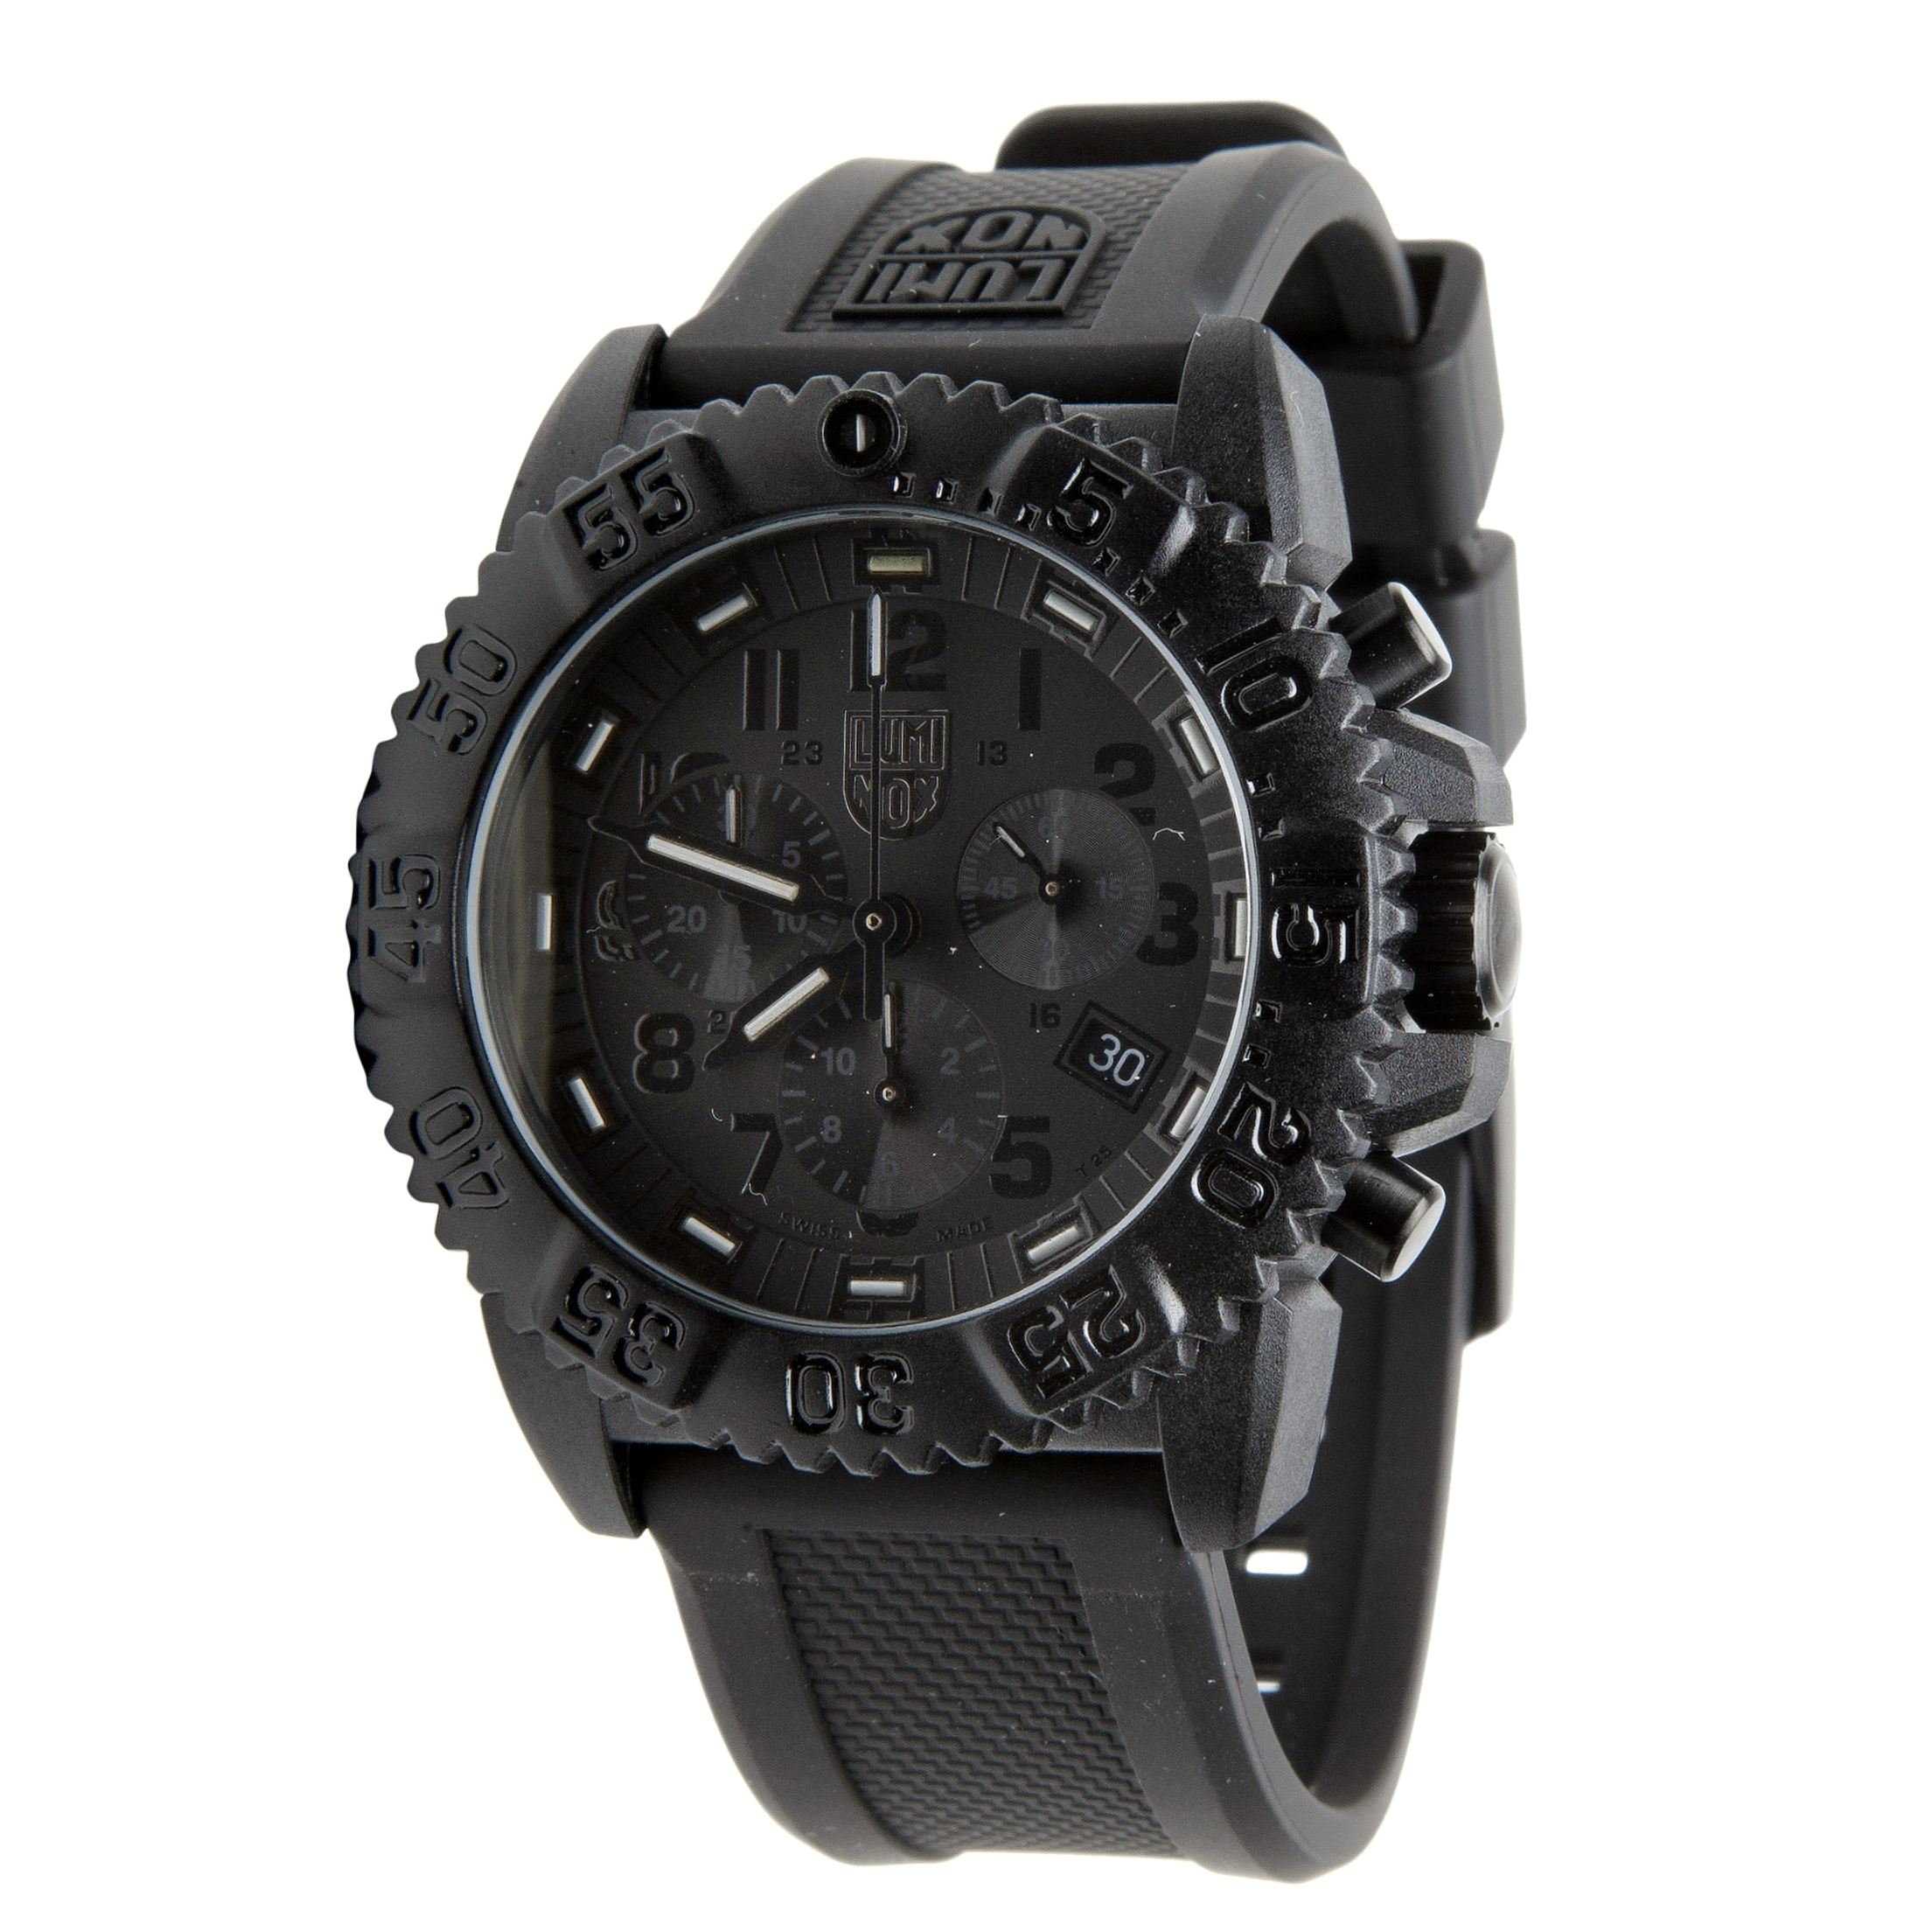 New luminox analog men 39 s watch 3081 bo all black rubber navy seals blackout army for Luminox watches